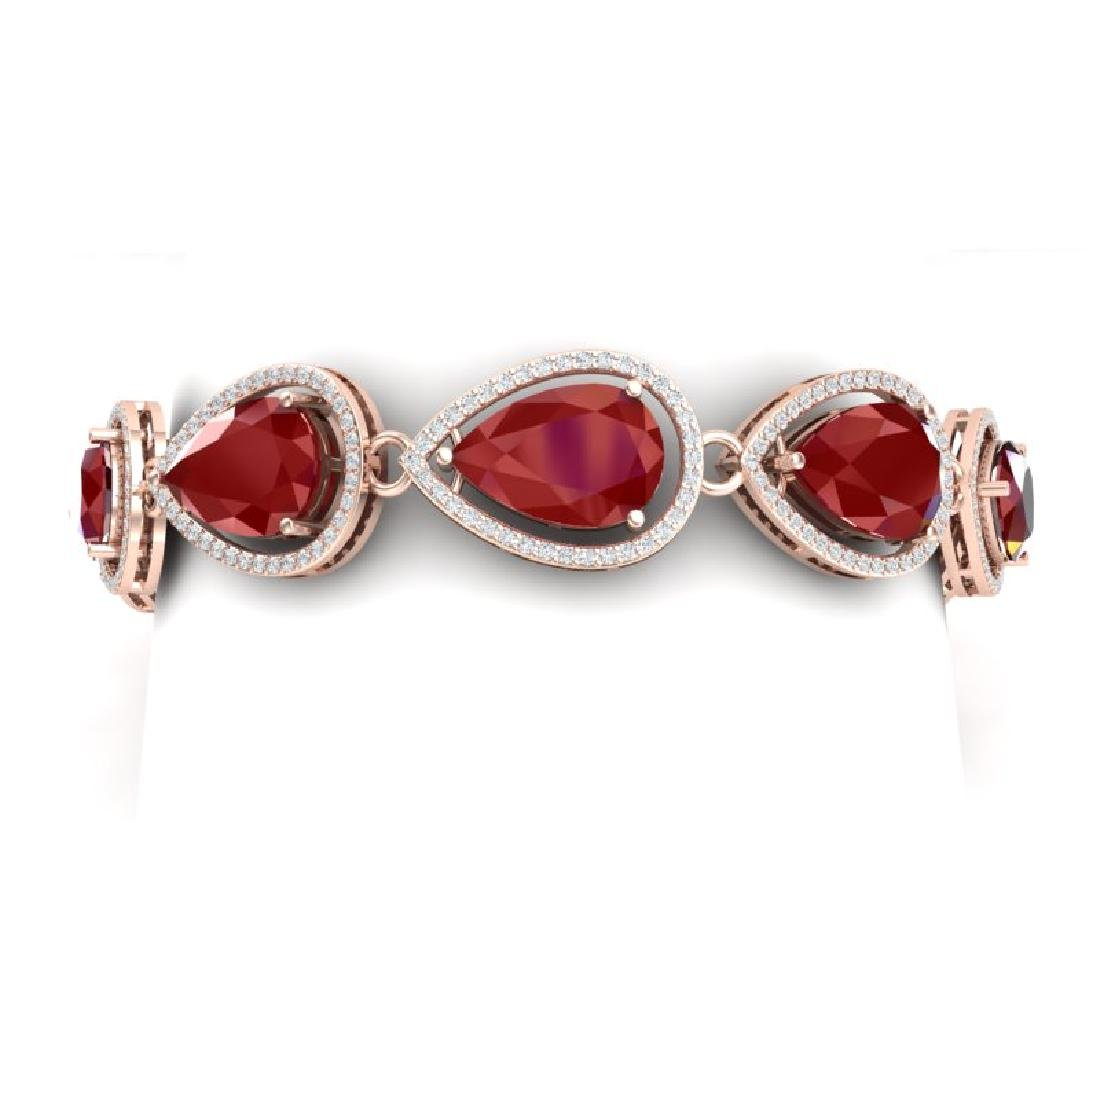 28.31 CTW Royalty Ruby & VS Diamond Bracelet 18K Rose